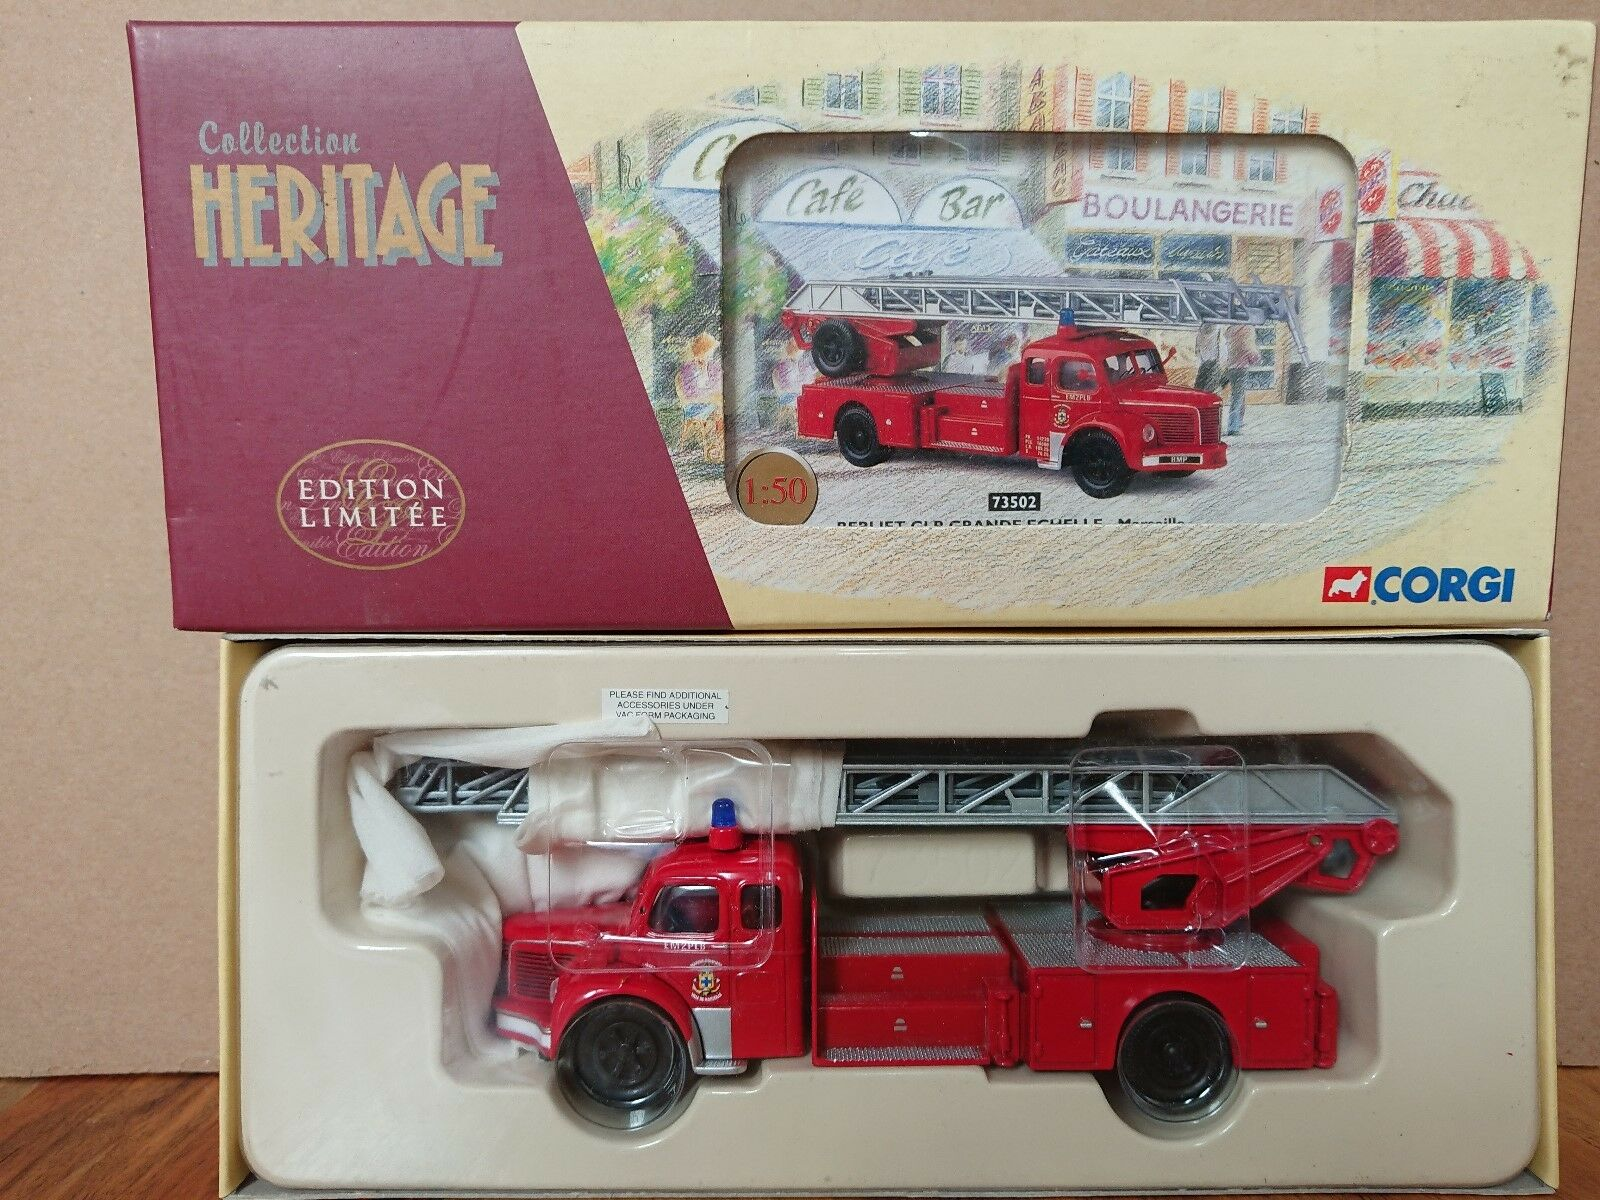 Corgi 73502 Berliet GLR Grande Echelle Marseille Ltd Edition No. 1185 of 2352